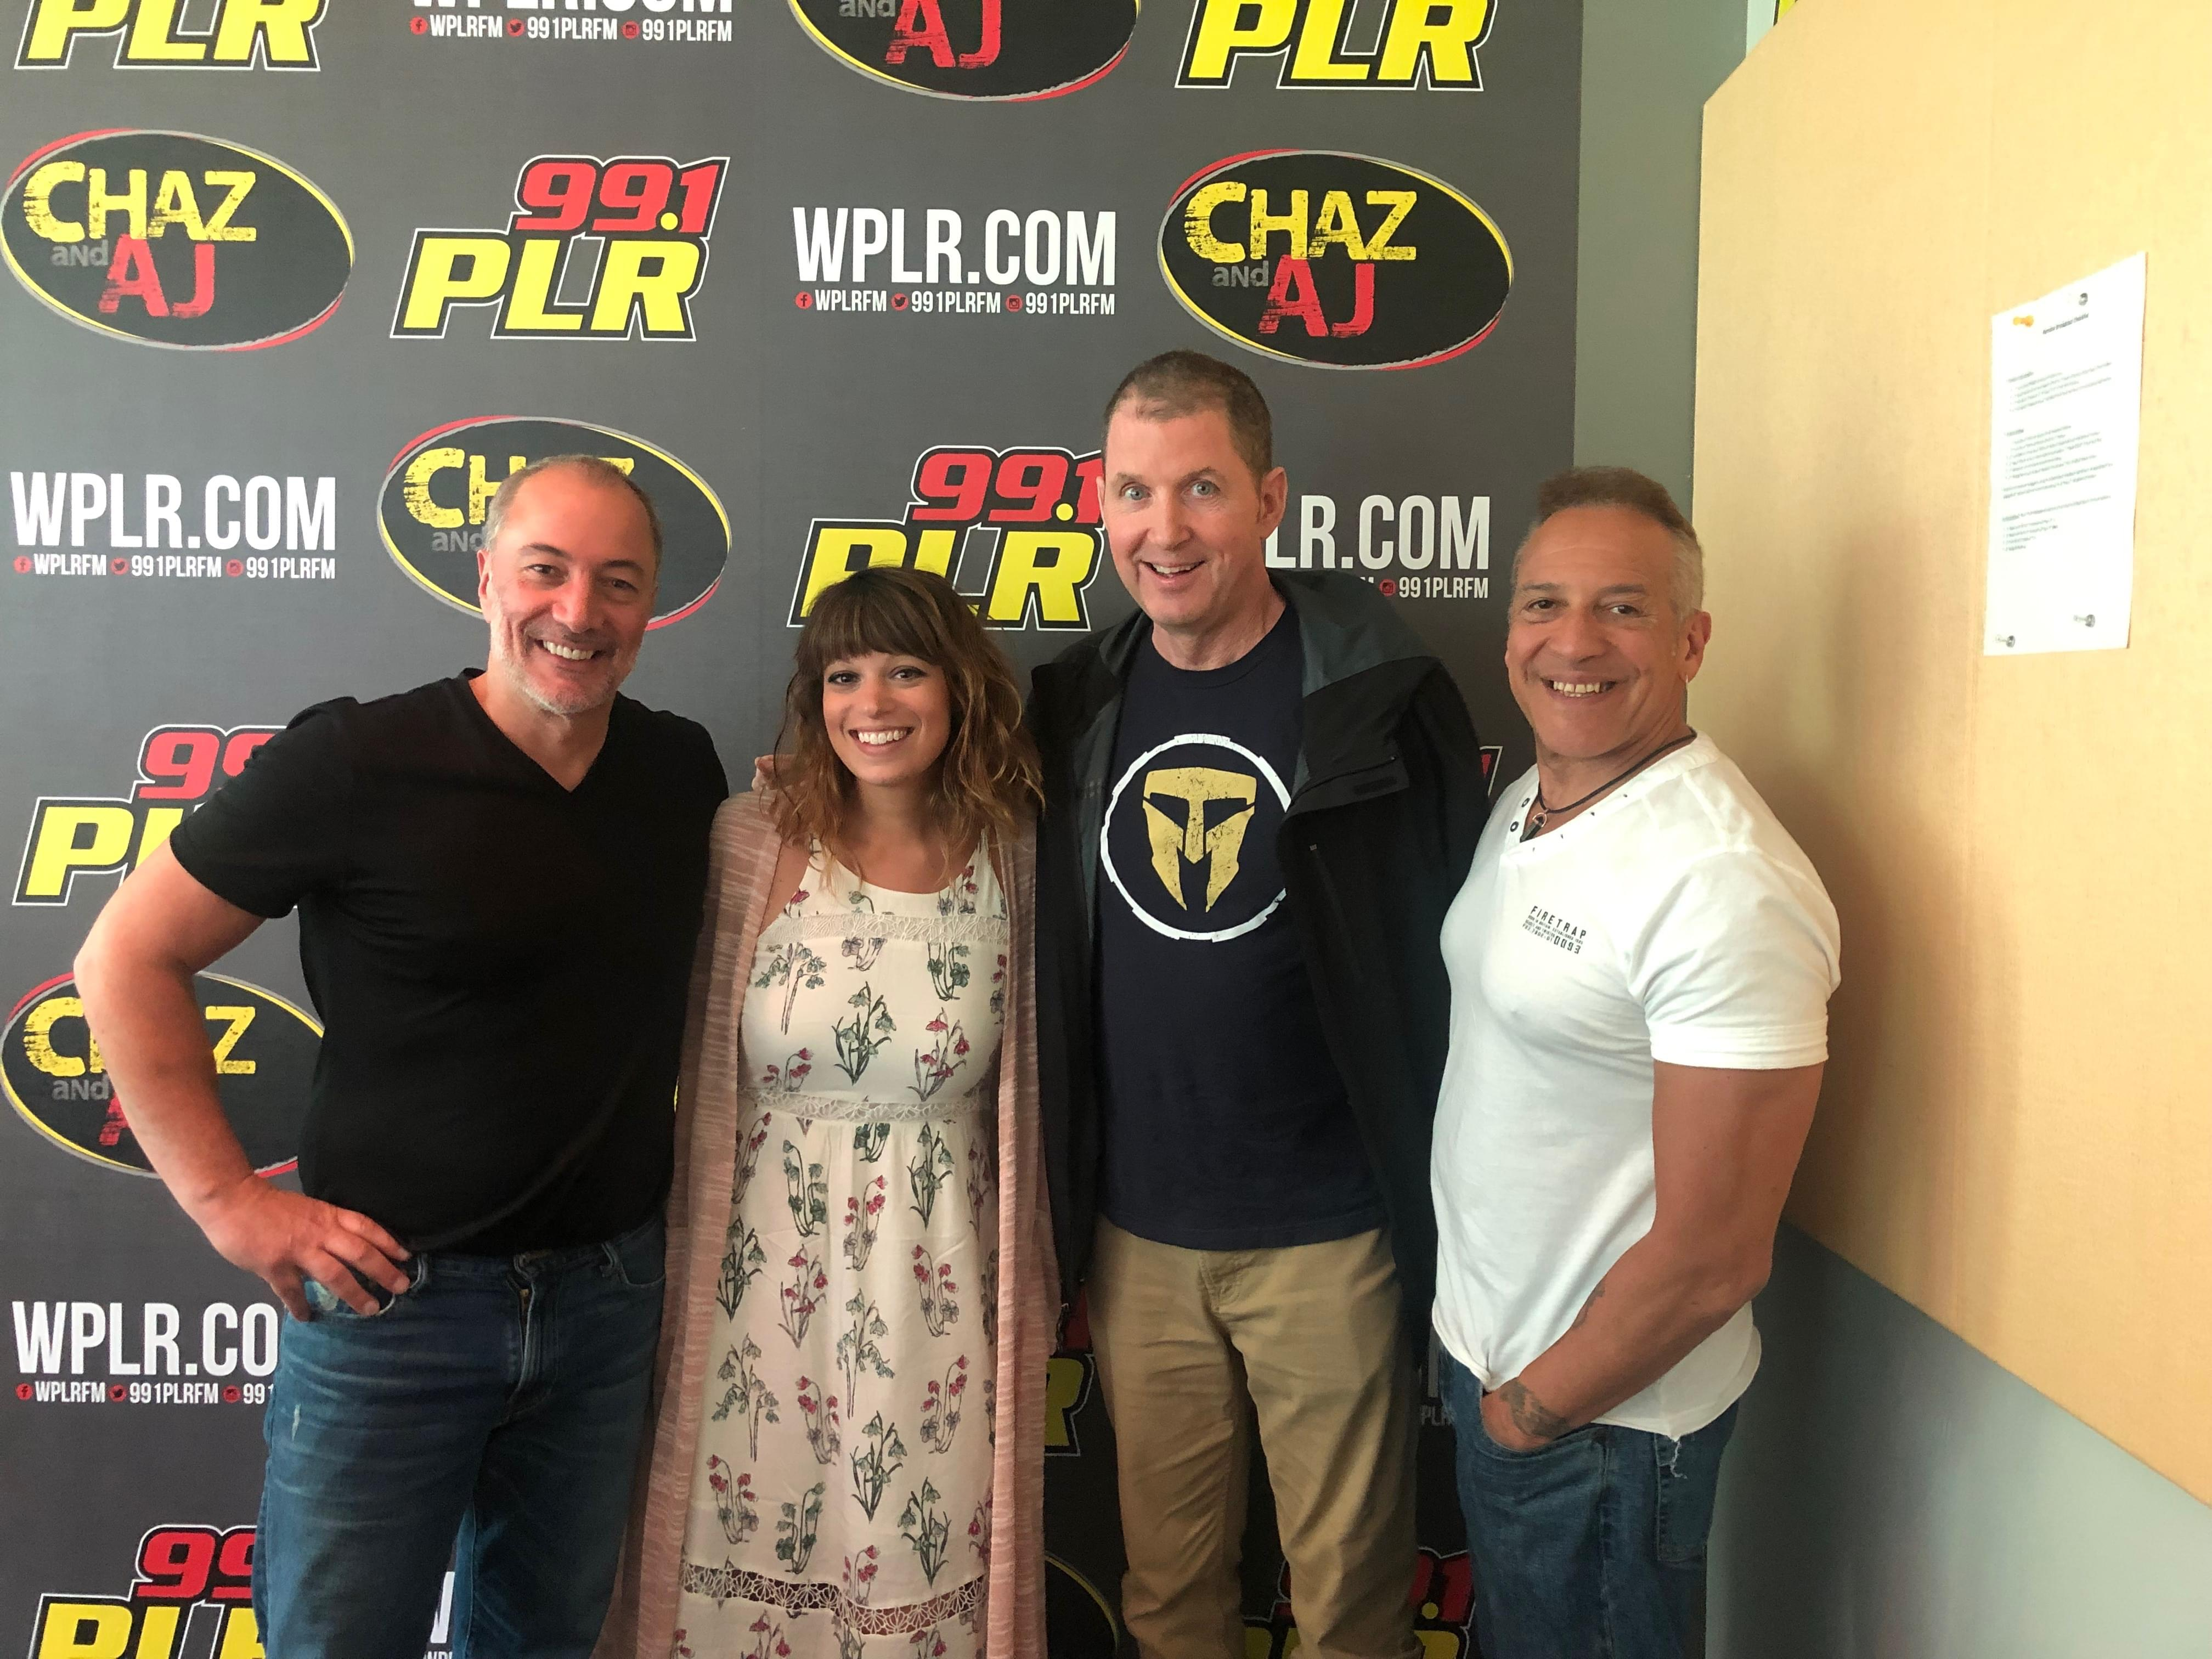 PODCAST – Friday, June 7: Comedian Kevin Brennan In Studio, The Latest On The Missing New Canaan Mom, And The Veteran's Gala